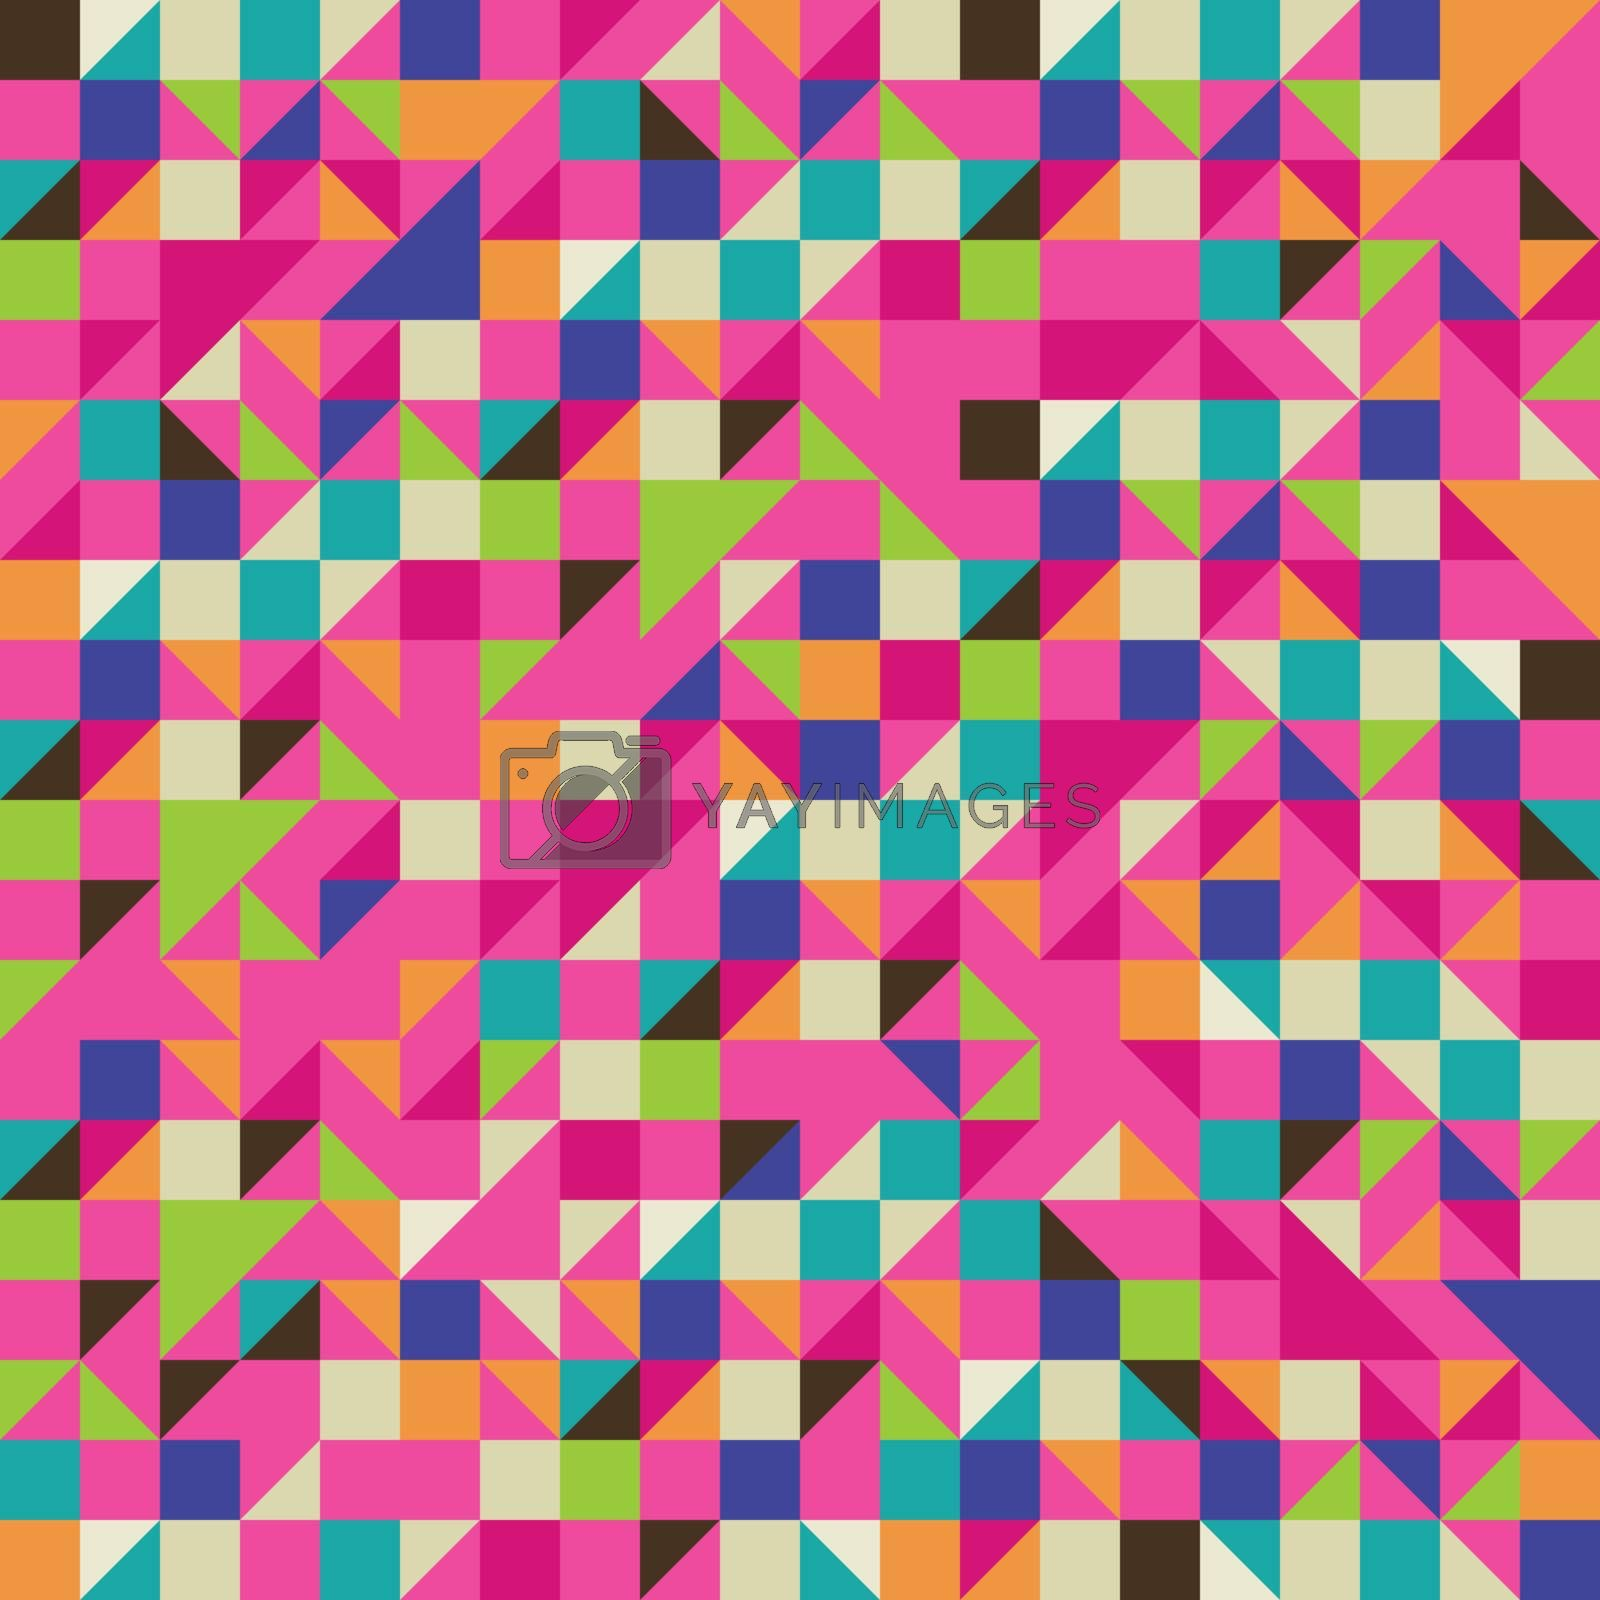 Triangle and Square mosaic in pink and other colors